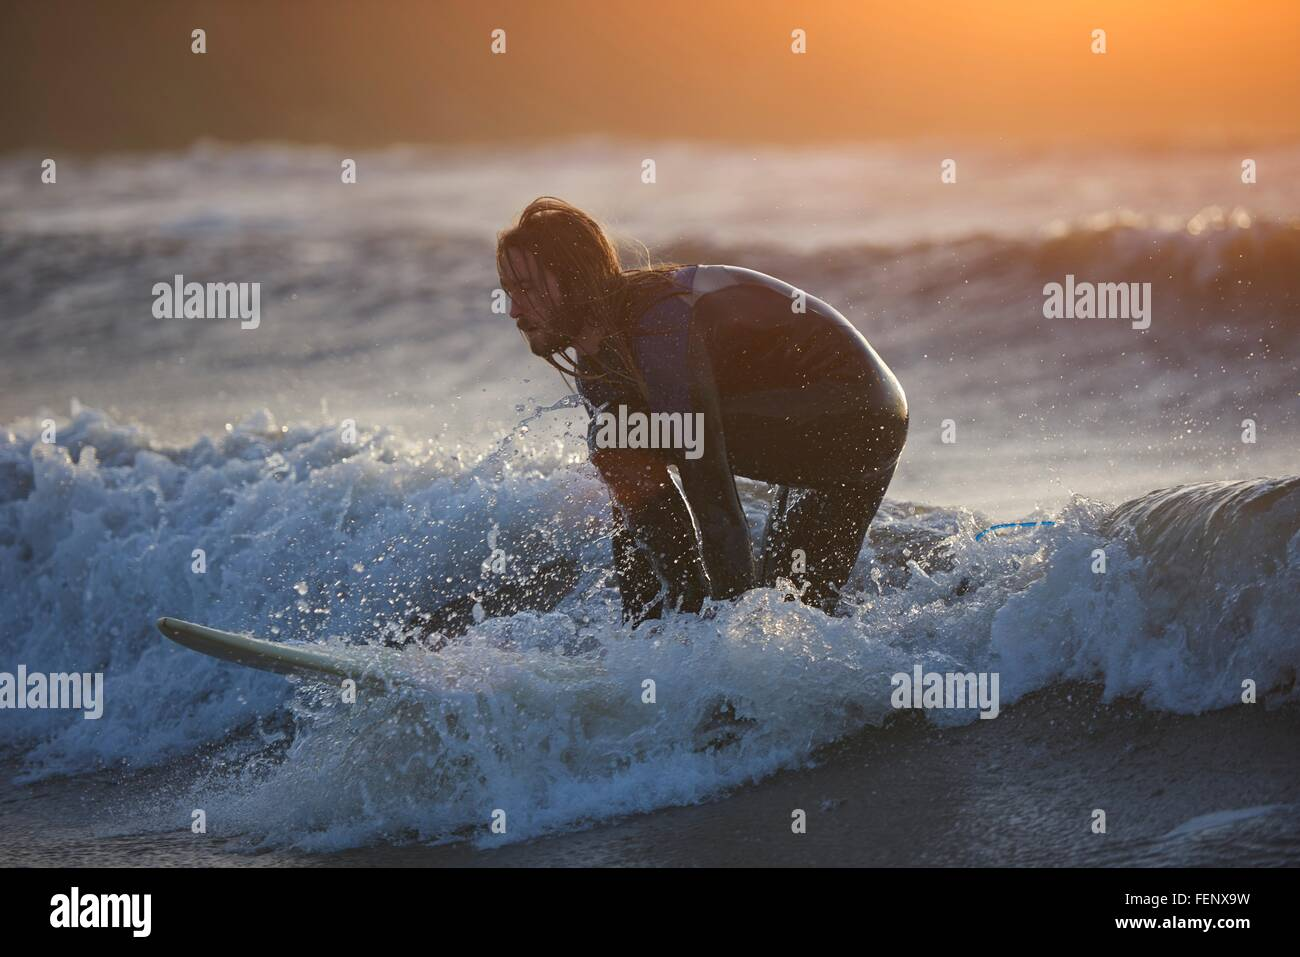 Jeune homme surf surfer sur la vague de l'océan, Devon, England, UK Photo Stock